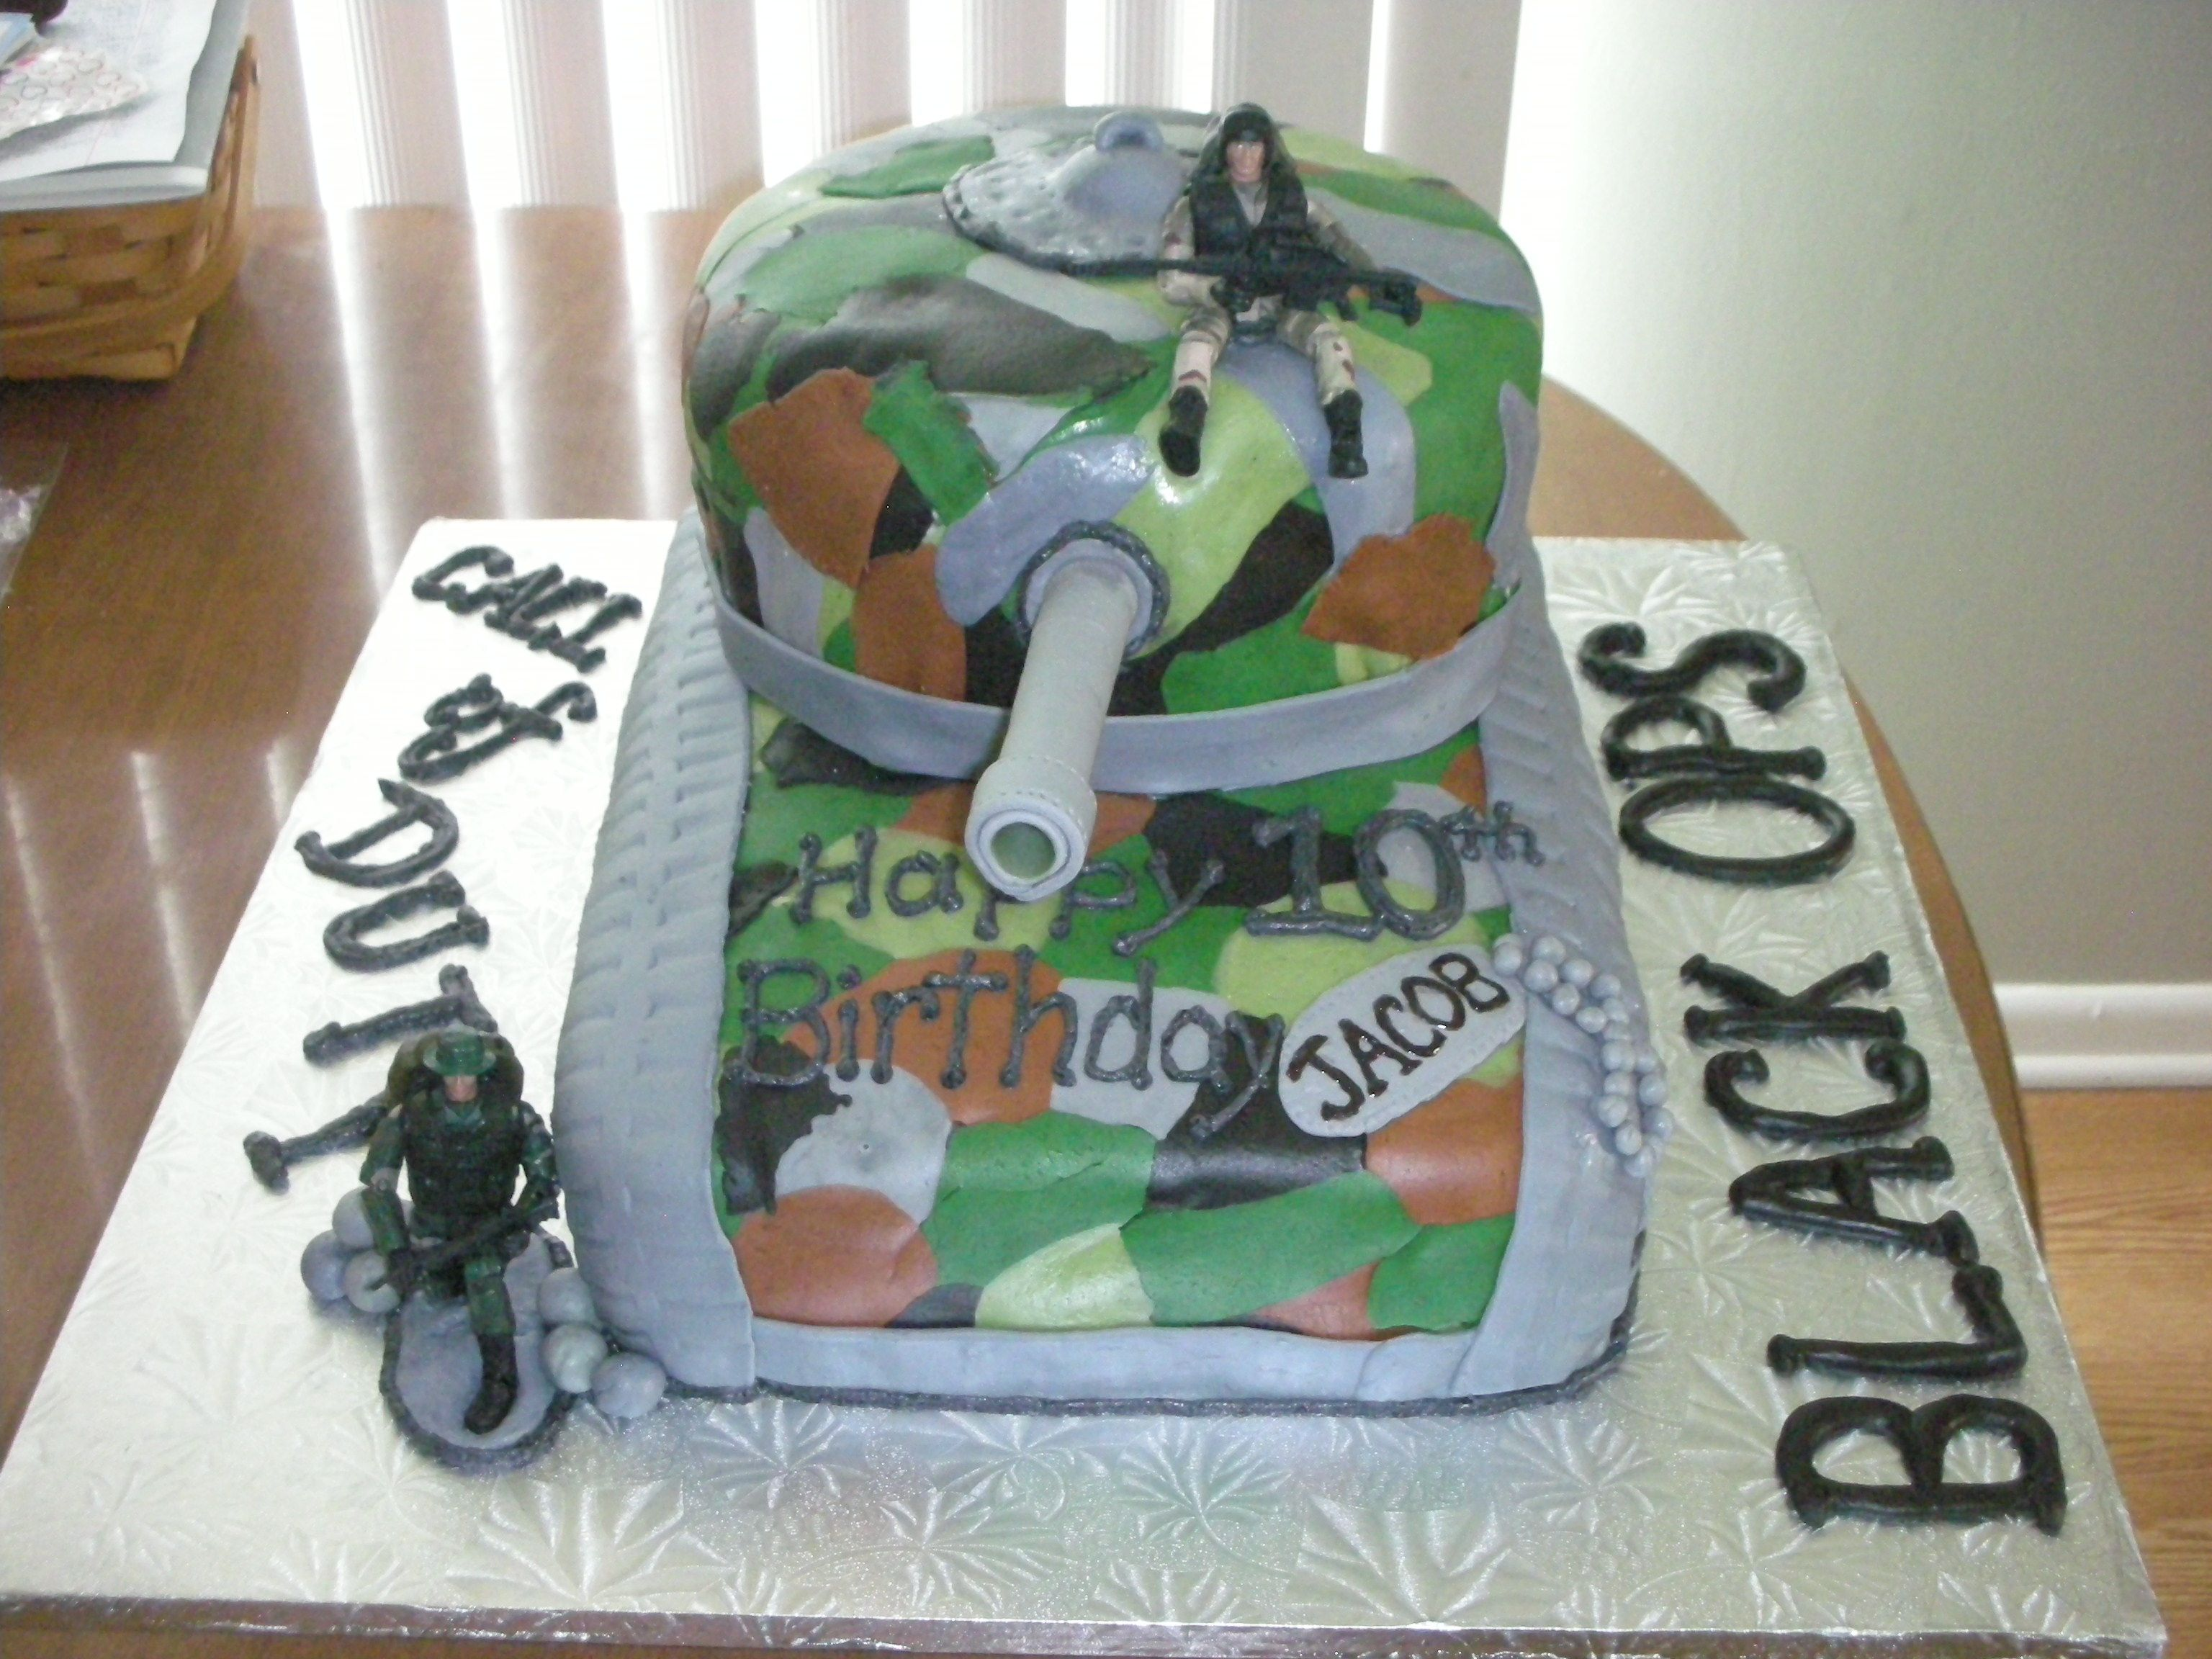 Call Of Duty Black Ops Tank Birthday Cake This Is A Birthday Cake